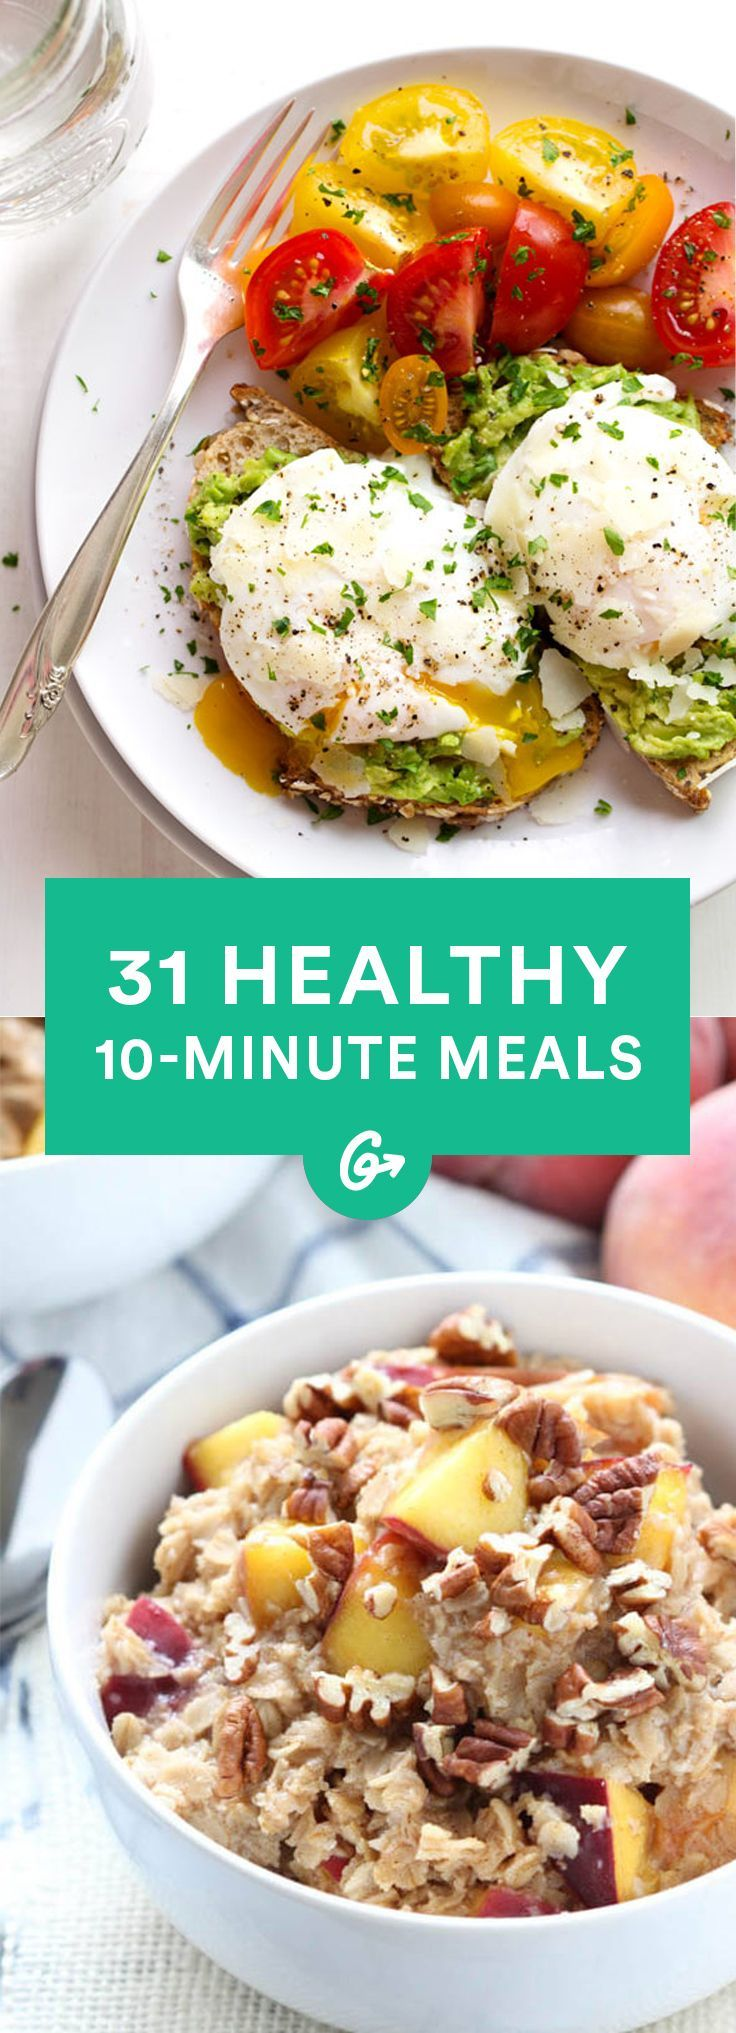 10-Minute Recipes\u201429 Healthy, Fast Meals This collection of recipes covers breakfast, lunch, and dinner \u2014 and it\u2019s fast food health experts would approve of. #quickfitness